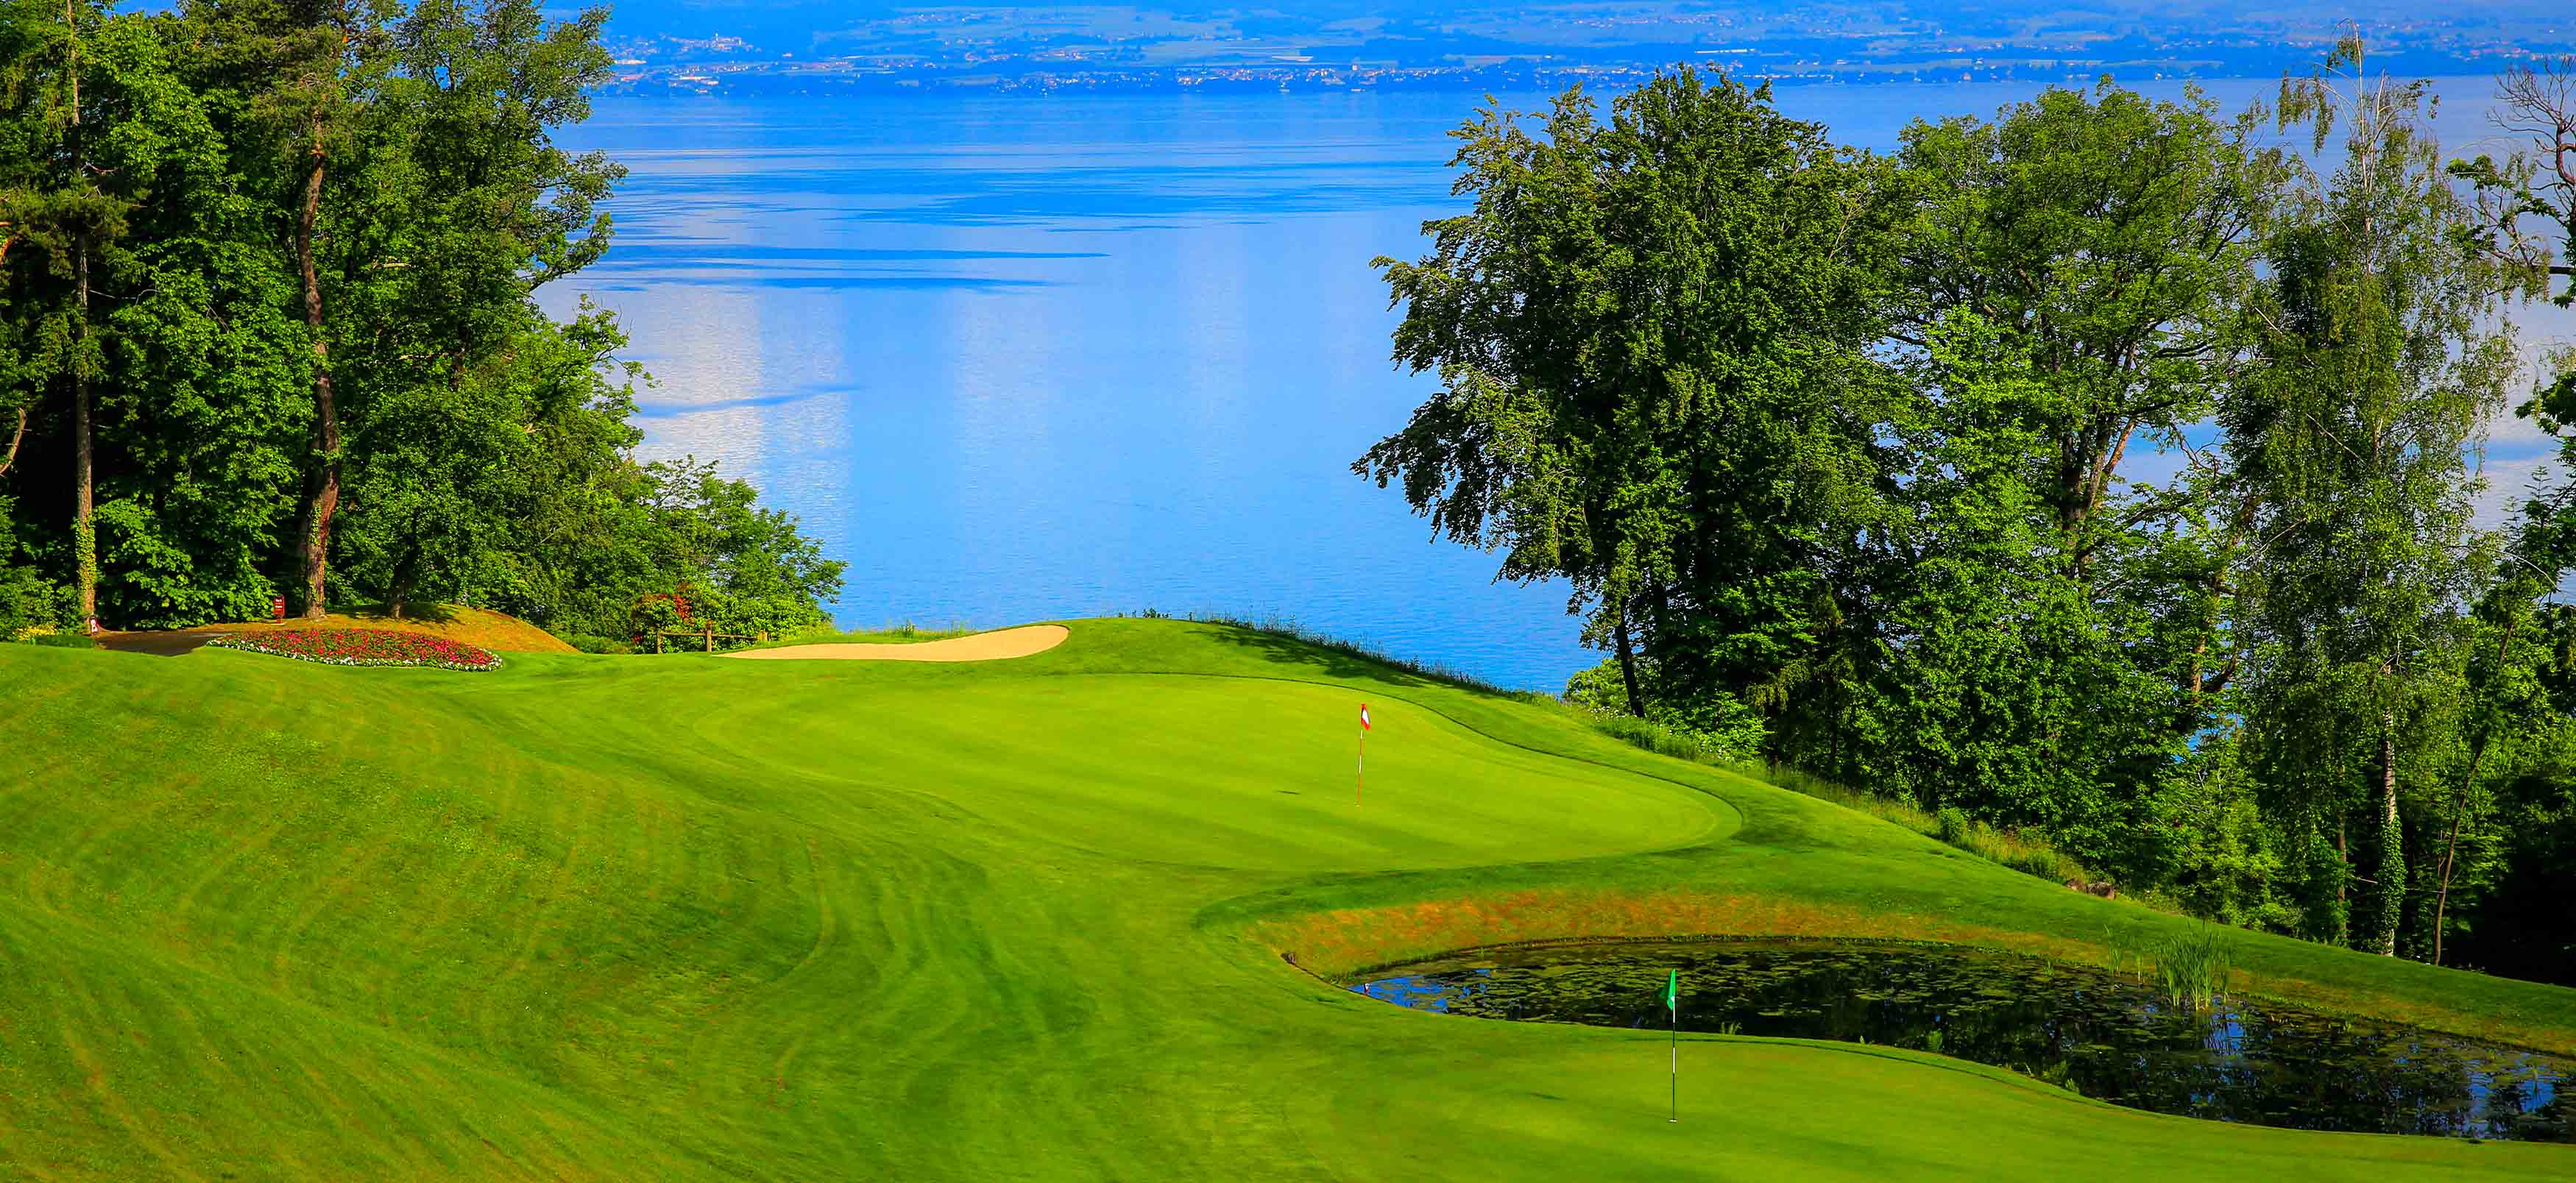 Academy of evian resort golf club a training centre and a for Lake geneva resorts cabins